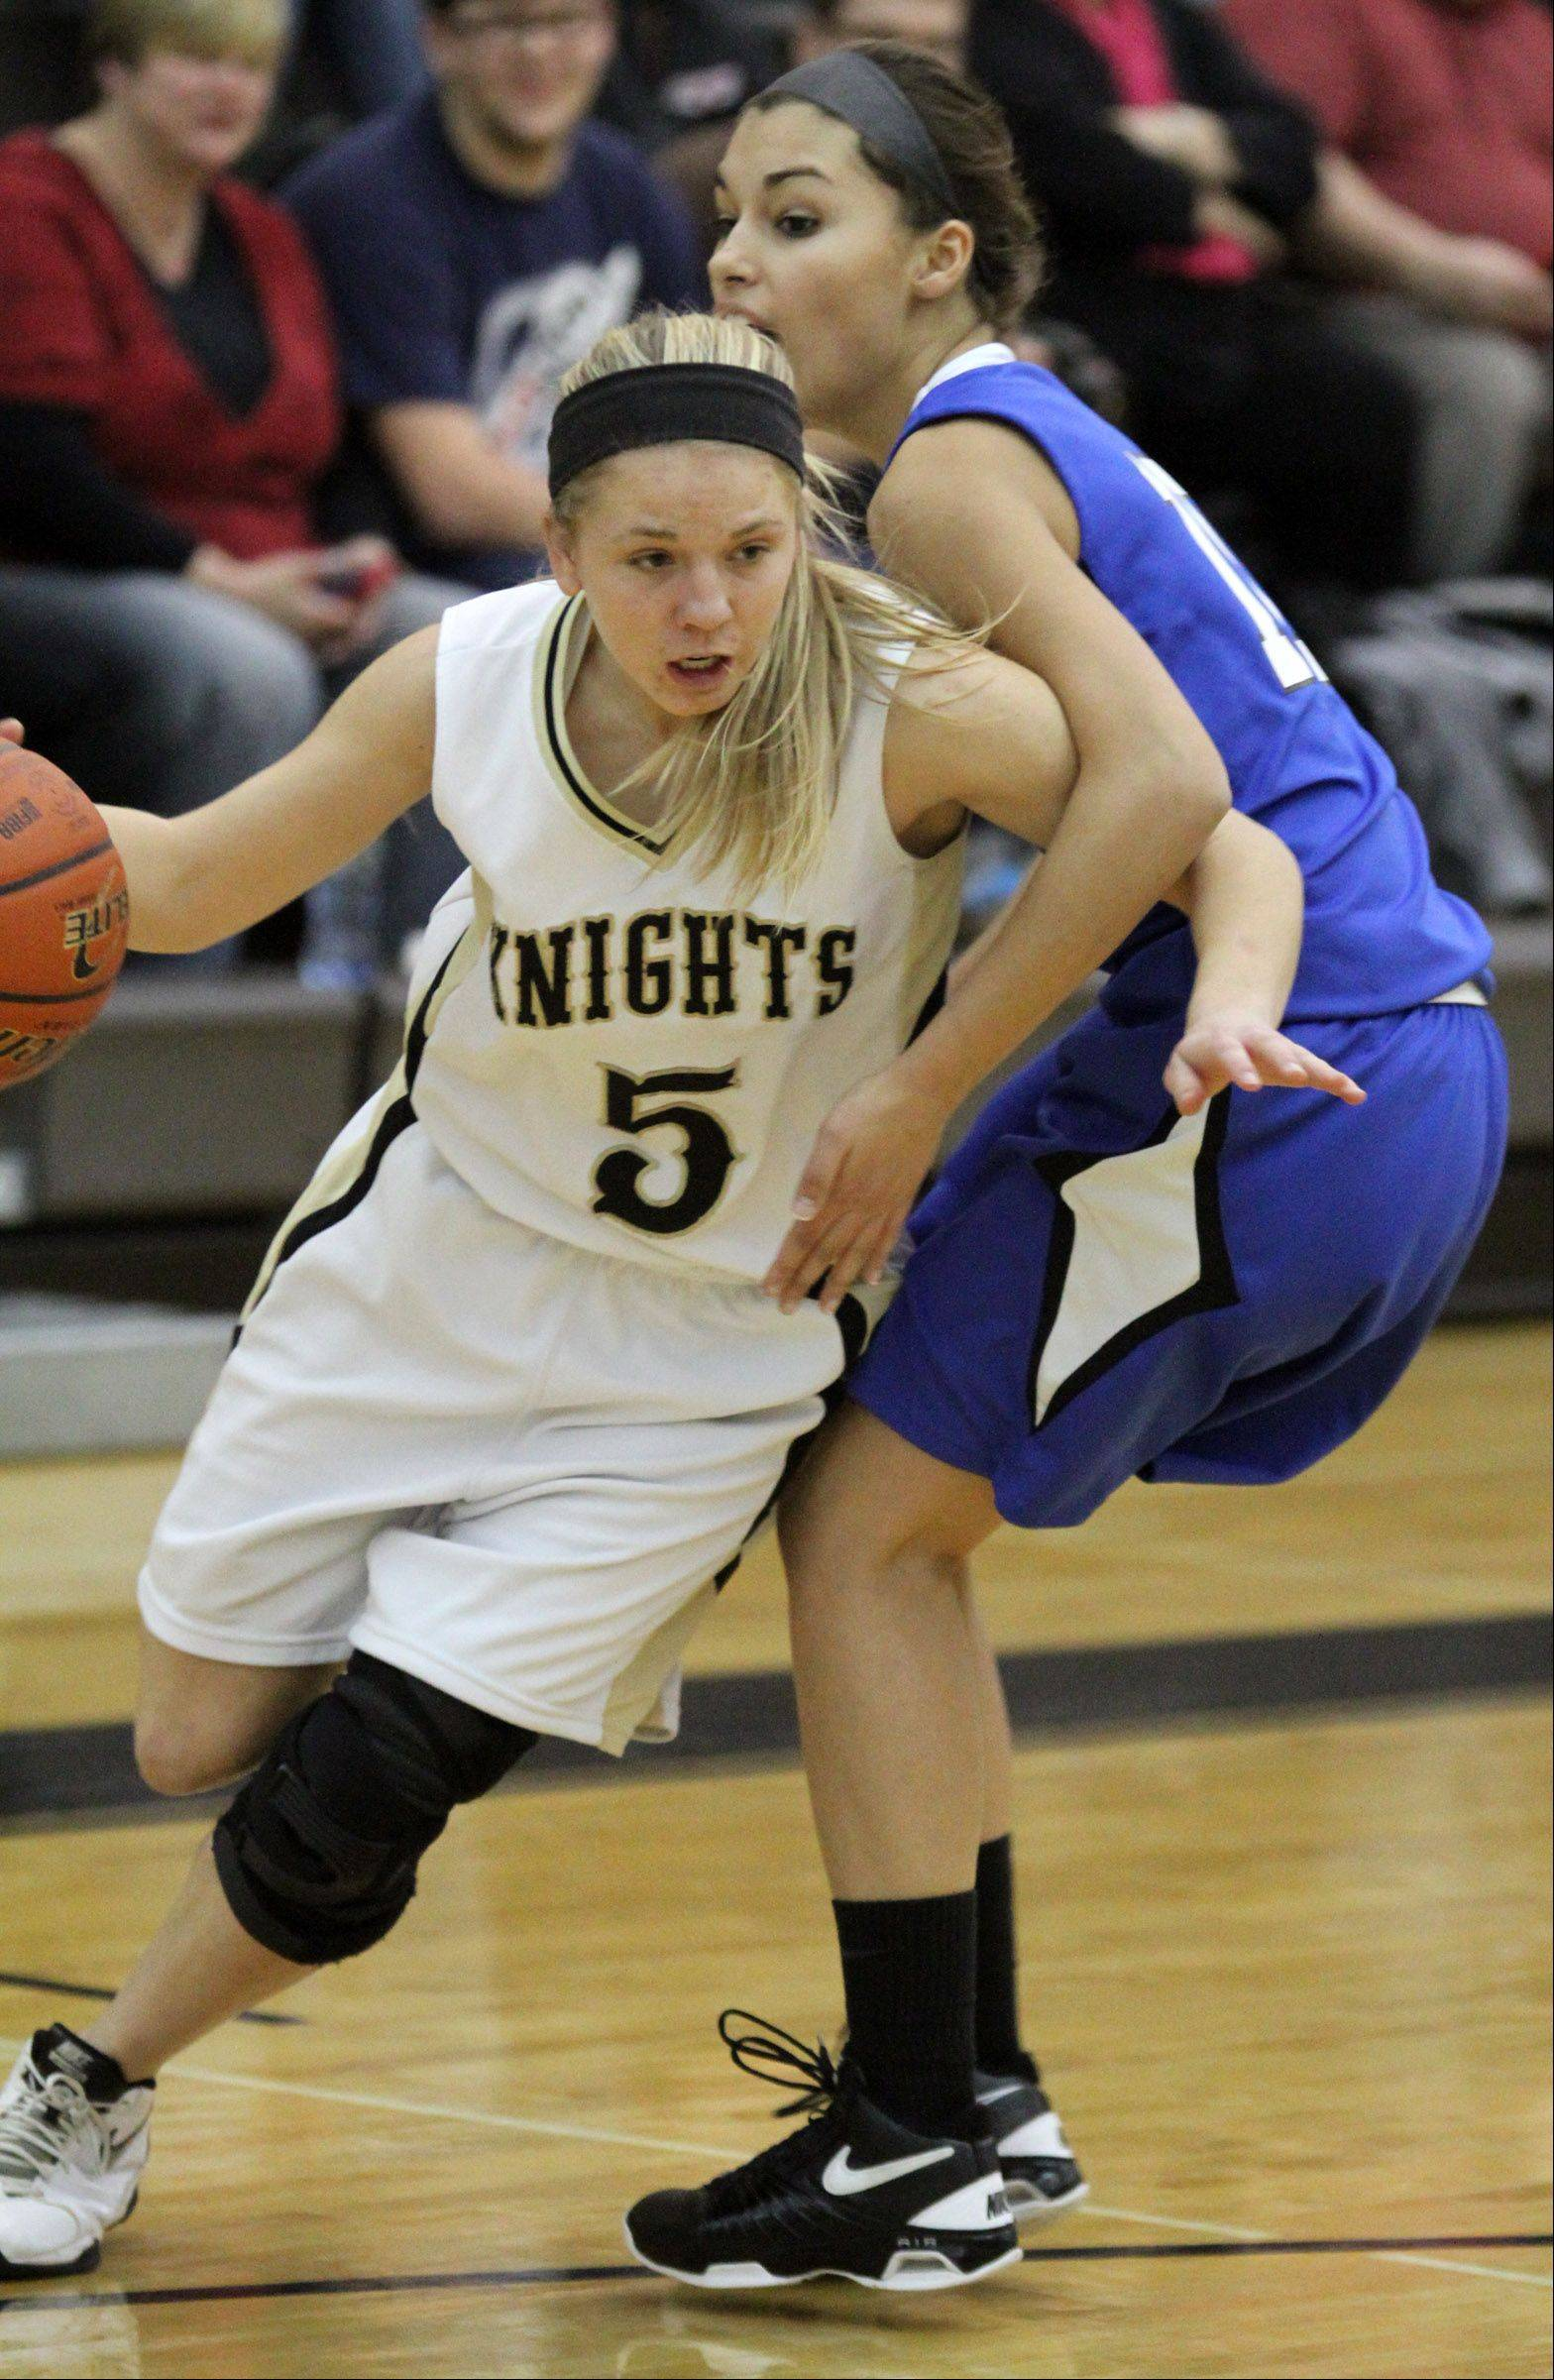 Images from the Woodstock vs. Grayslake North girls basketball game on Friday, Jan. 4 in Grayslake.